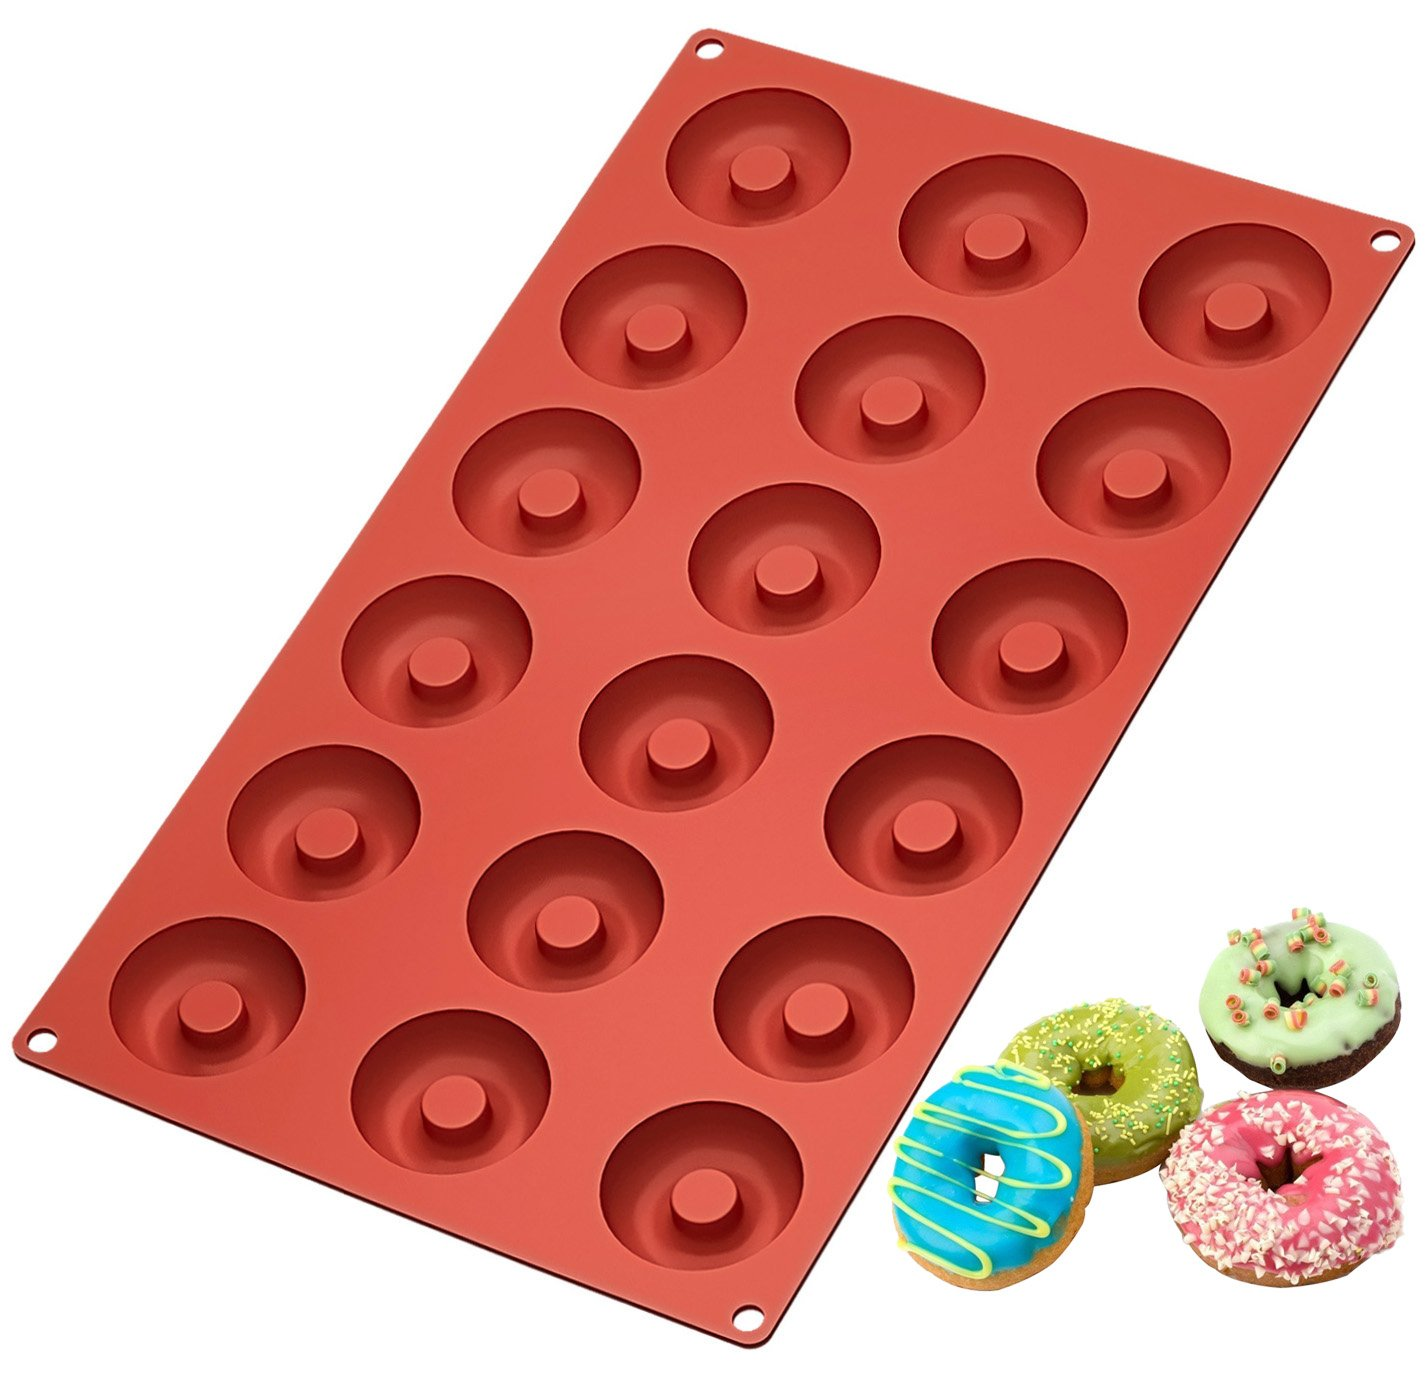 Ozera Silicone Mini Donut Pan, 18 Cavity Doughnut Baking Mold Tray - Muffin Cups, Cake Mold, Biscuit Mold, Red